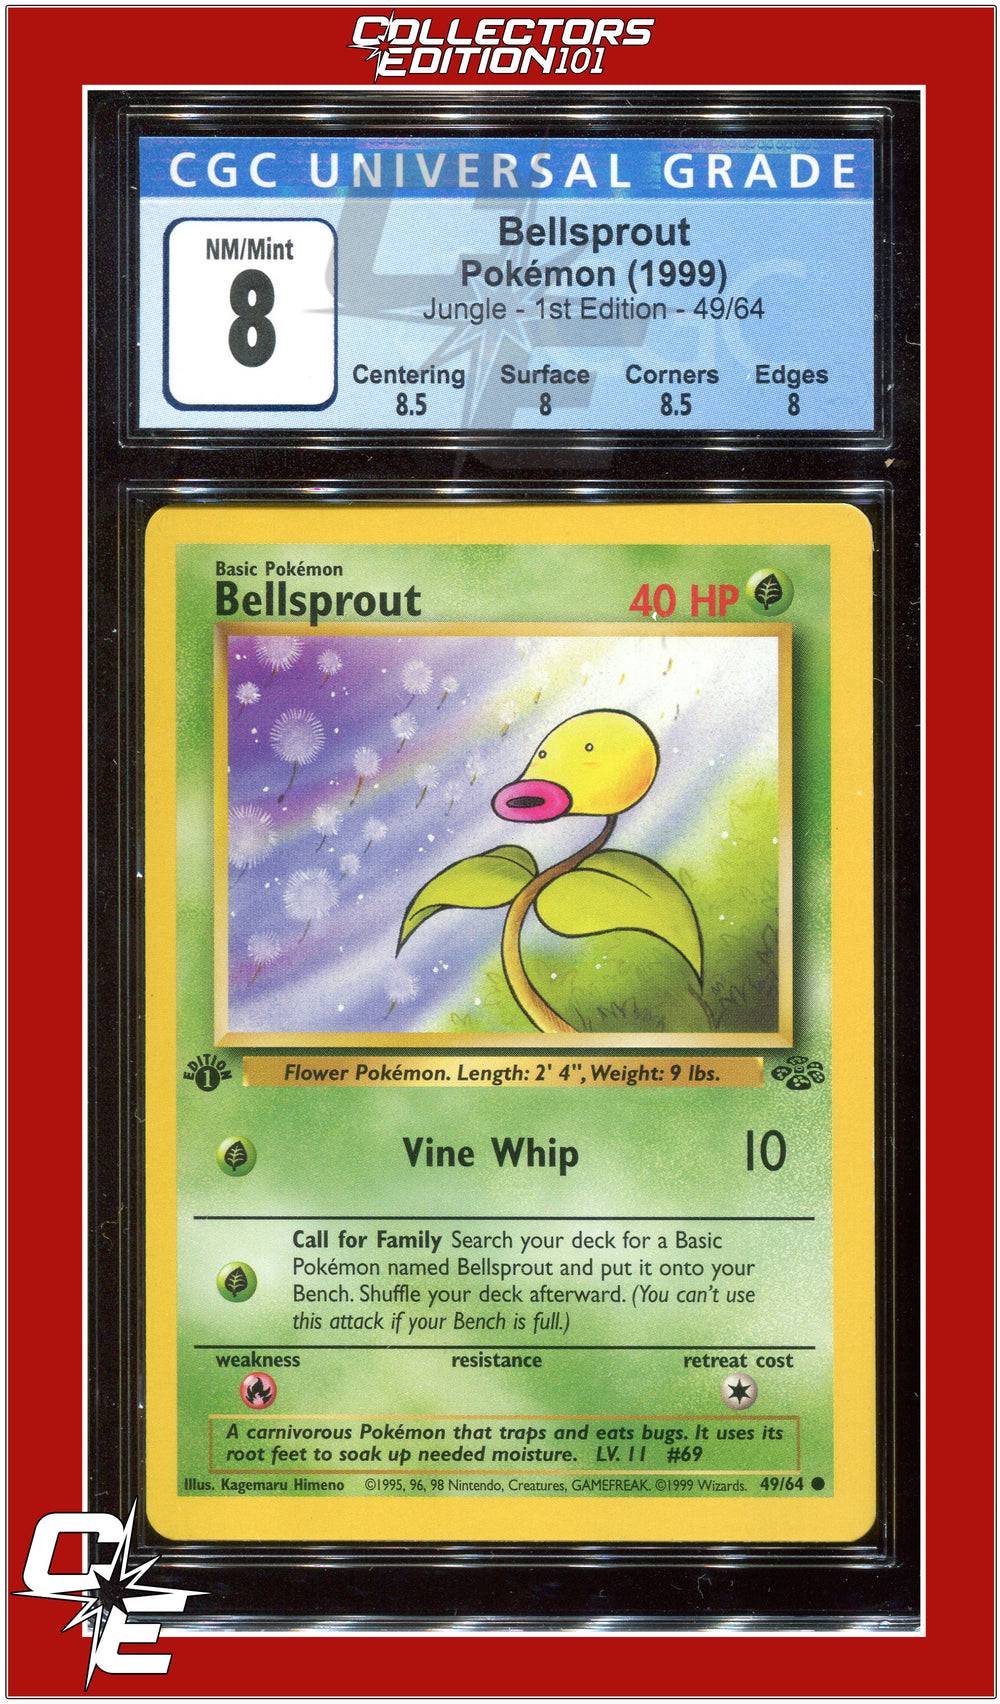 Jungle 1st Edition Bellsprout 49/64 CGC 8 - PSA BGS